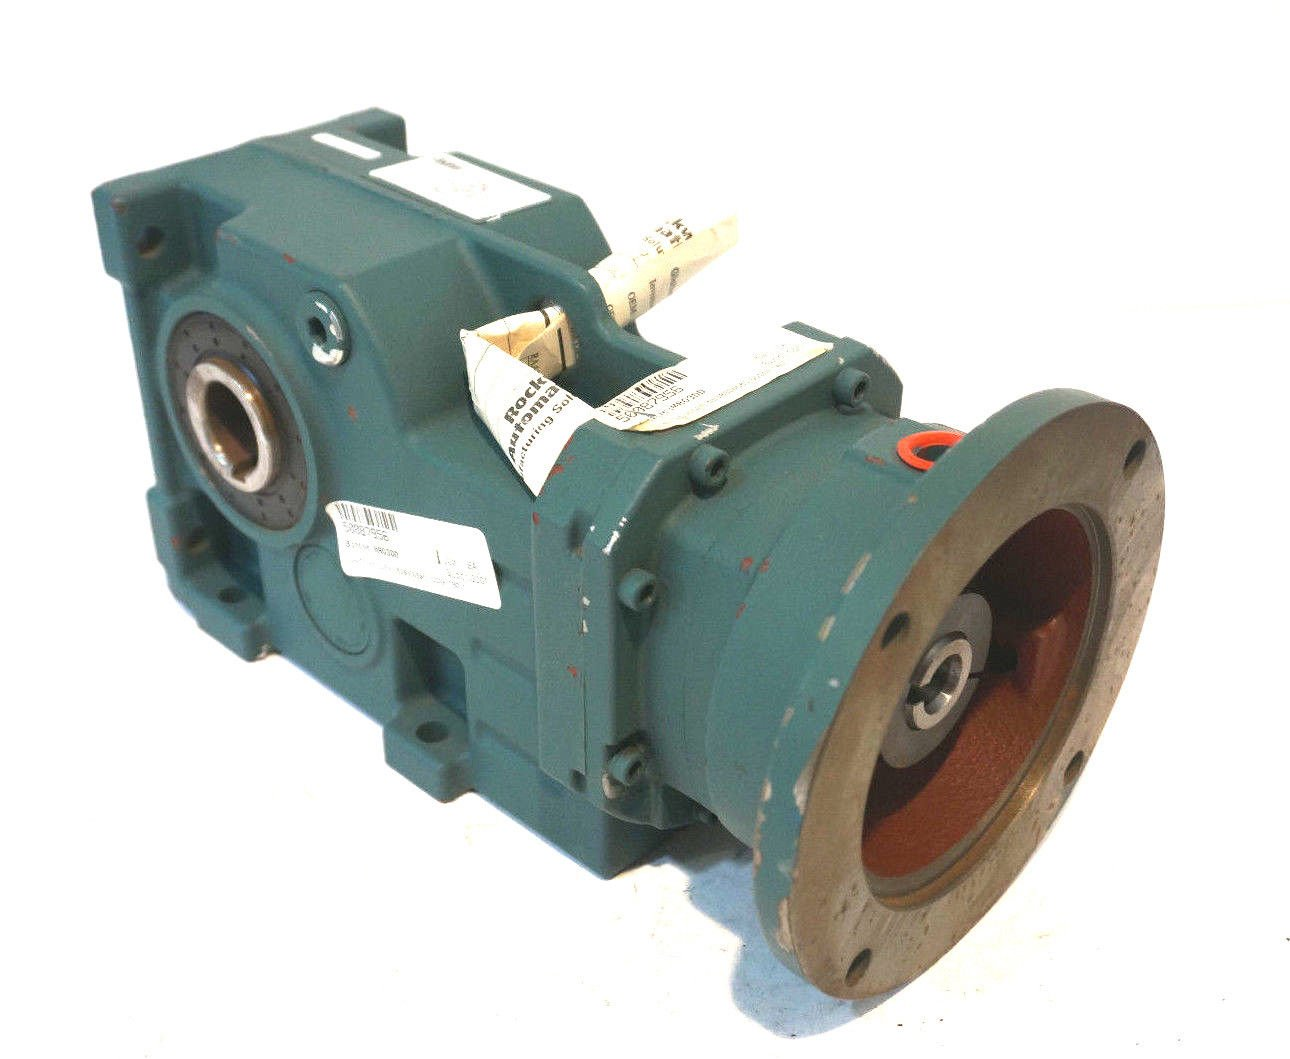 NEW DODGE QUANTIS BB383CN56C GEAR REDUCER RATIO 179 13:1 1750 RPM 0.34 HP:  Amazon.com: Industrial & Scientific